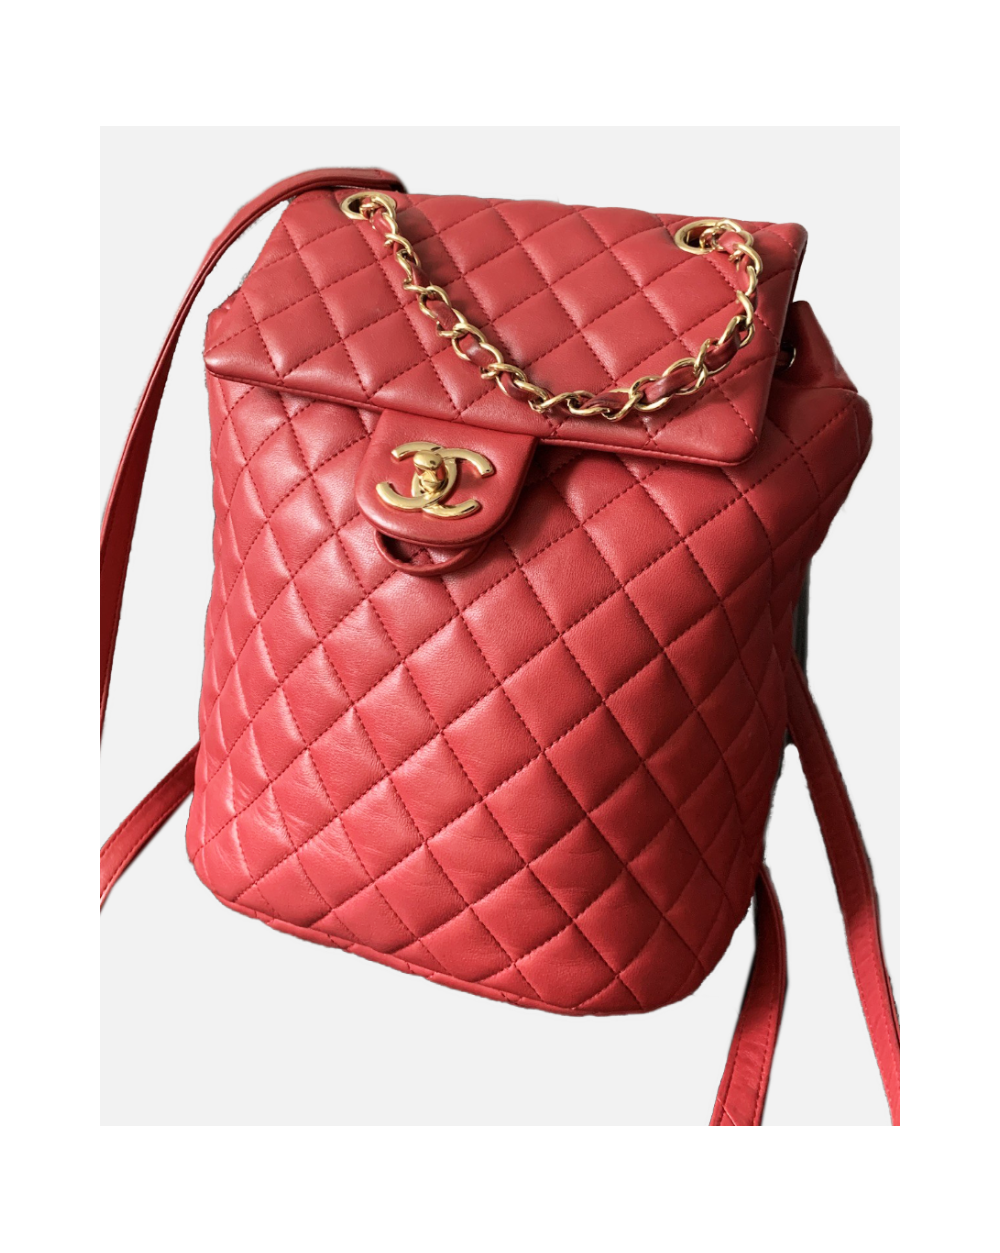 Chanel red backpack